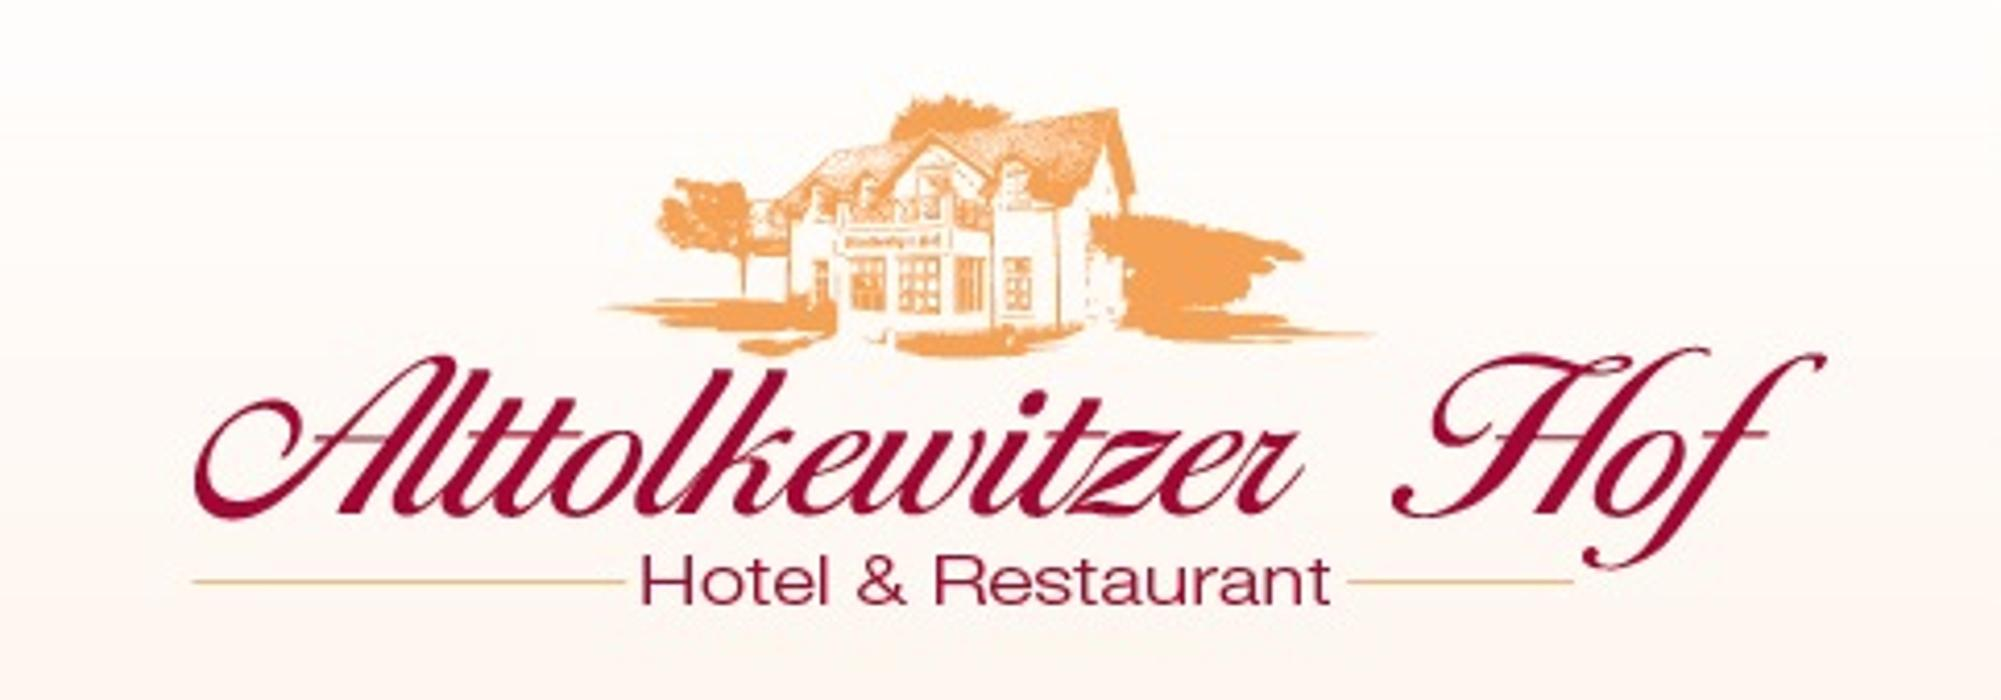 abclocal discover your neighborhood. The directory for your search. Hotel Restaurant Alttolkewitzer Hof in Dresden